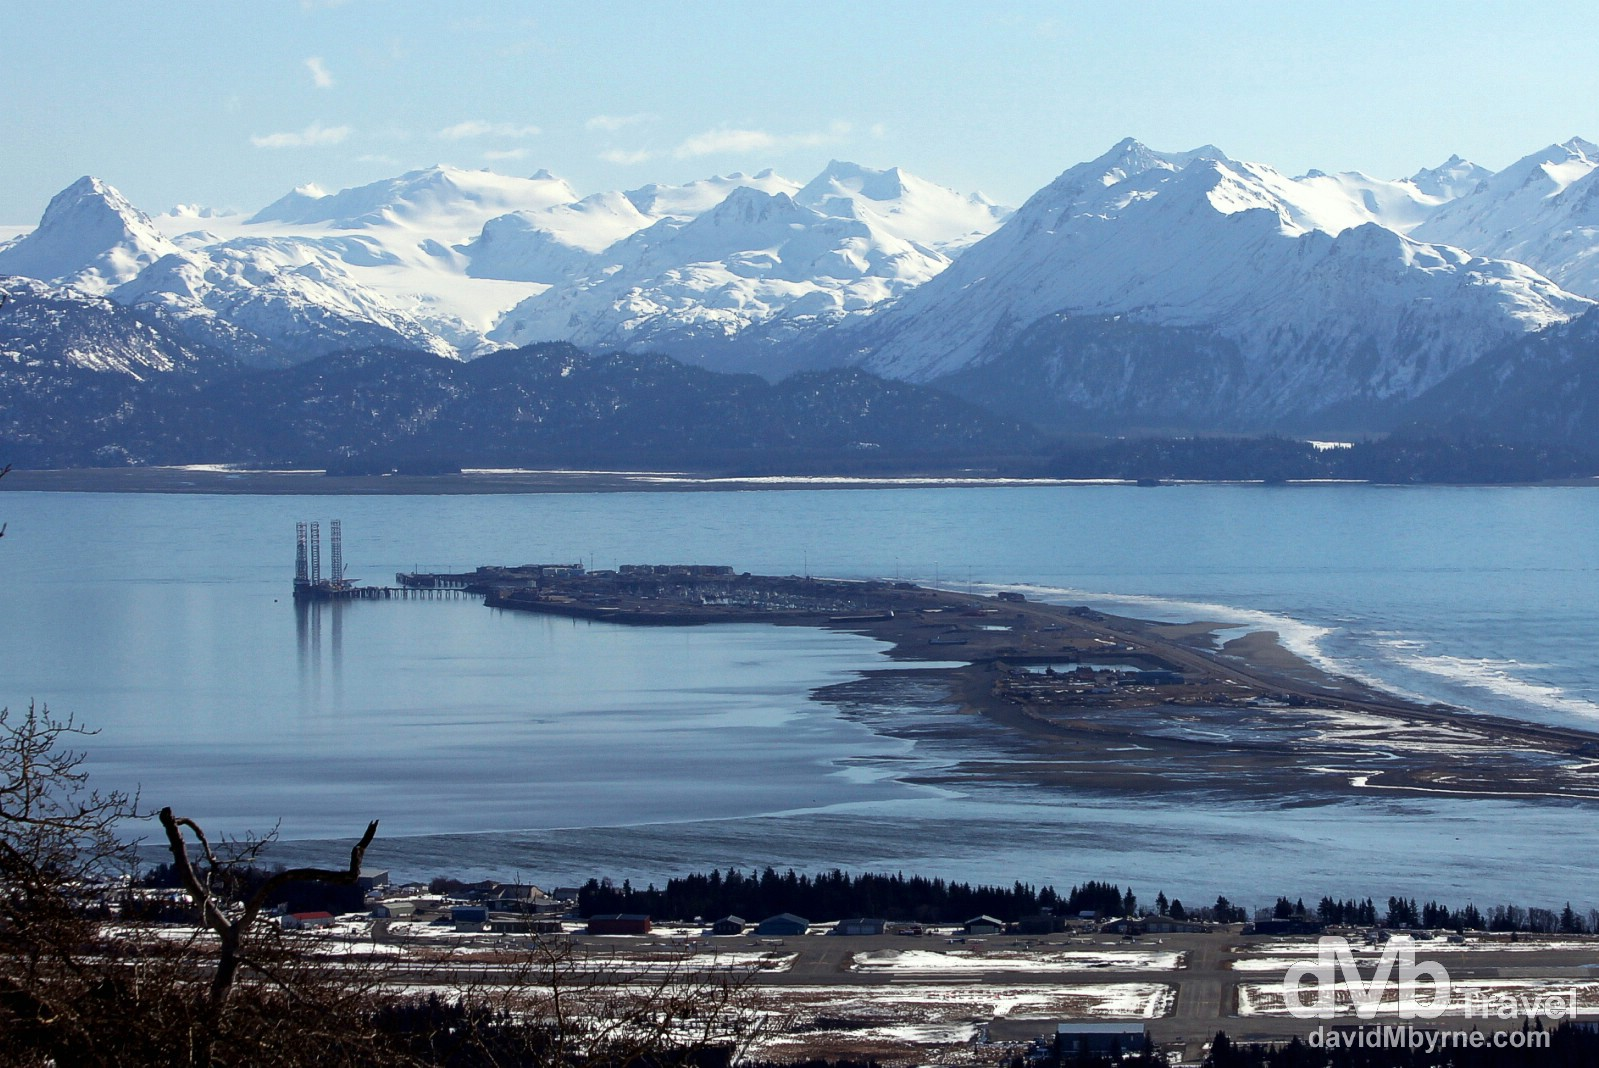 The Homer Spit as seen from Skyline Drive in Homer, Kenai Peninsula, Alaska, USA. March 17th 2013.